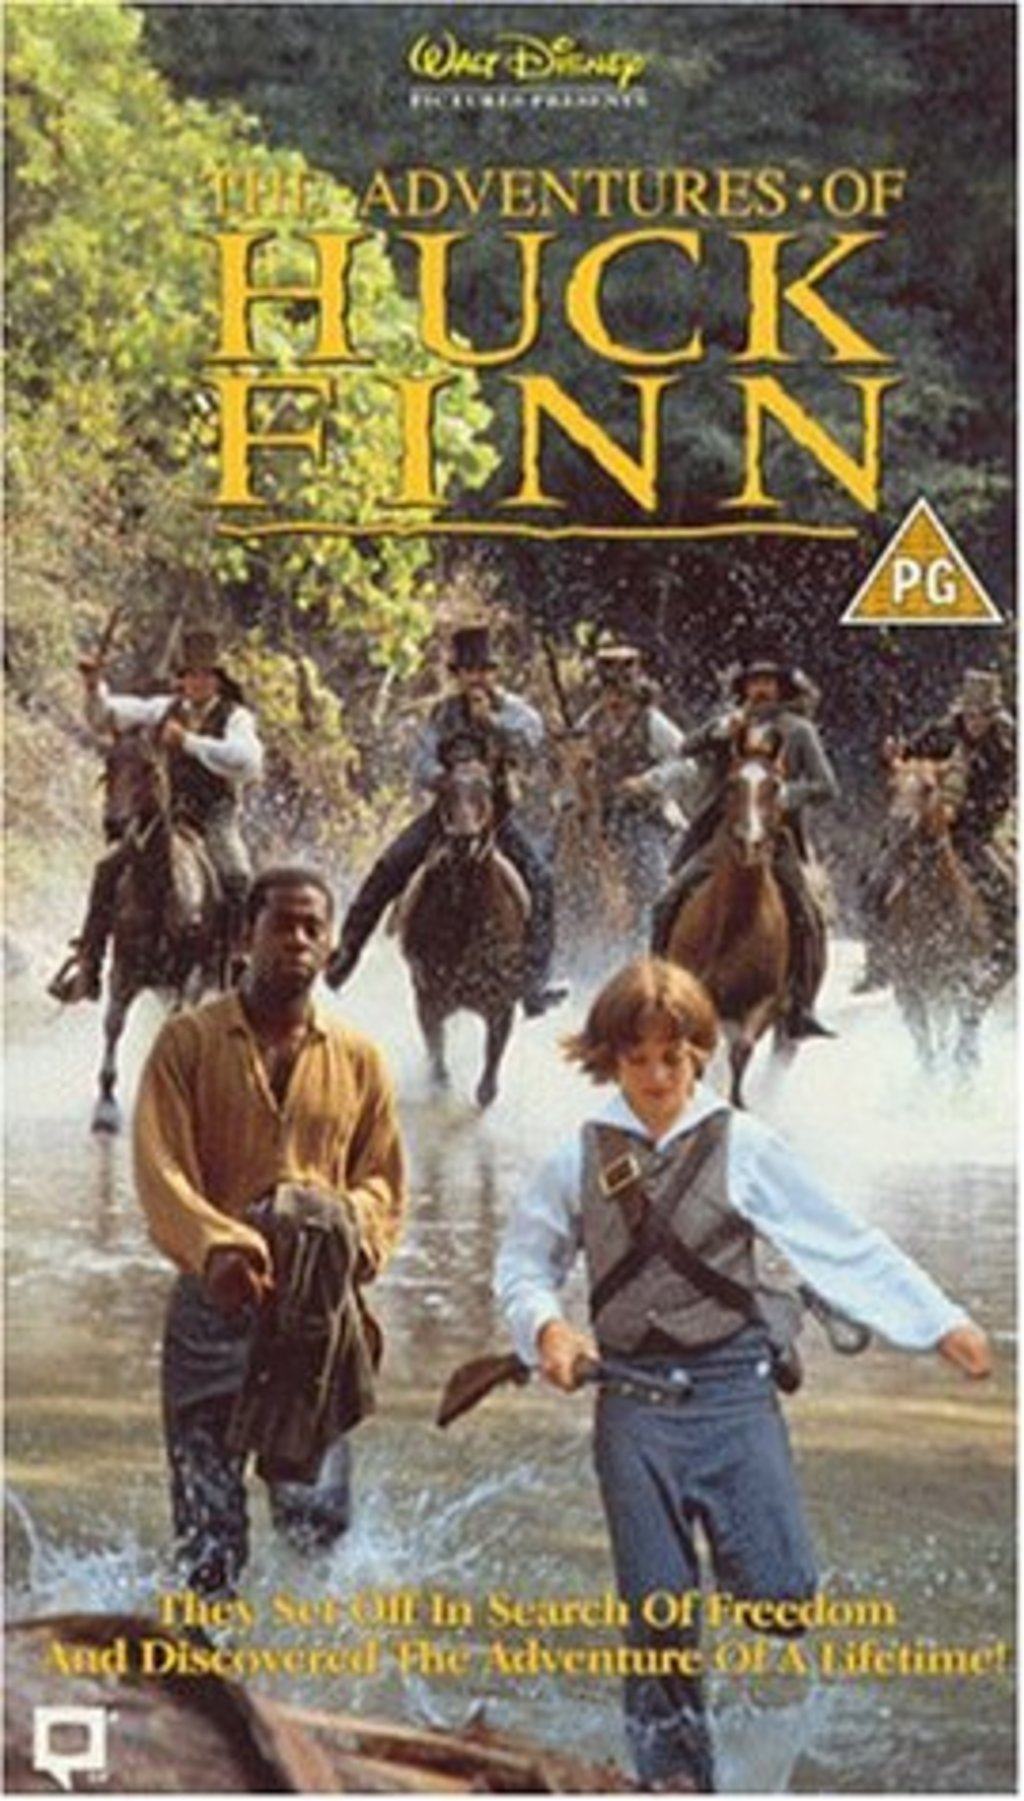 huckleberry finn s moral dilemma Moral development and dilemmas of huckleberry finn the adventures of huckleberry finn, is based on a young boys coming of age in missouri of the mid-1800s.